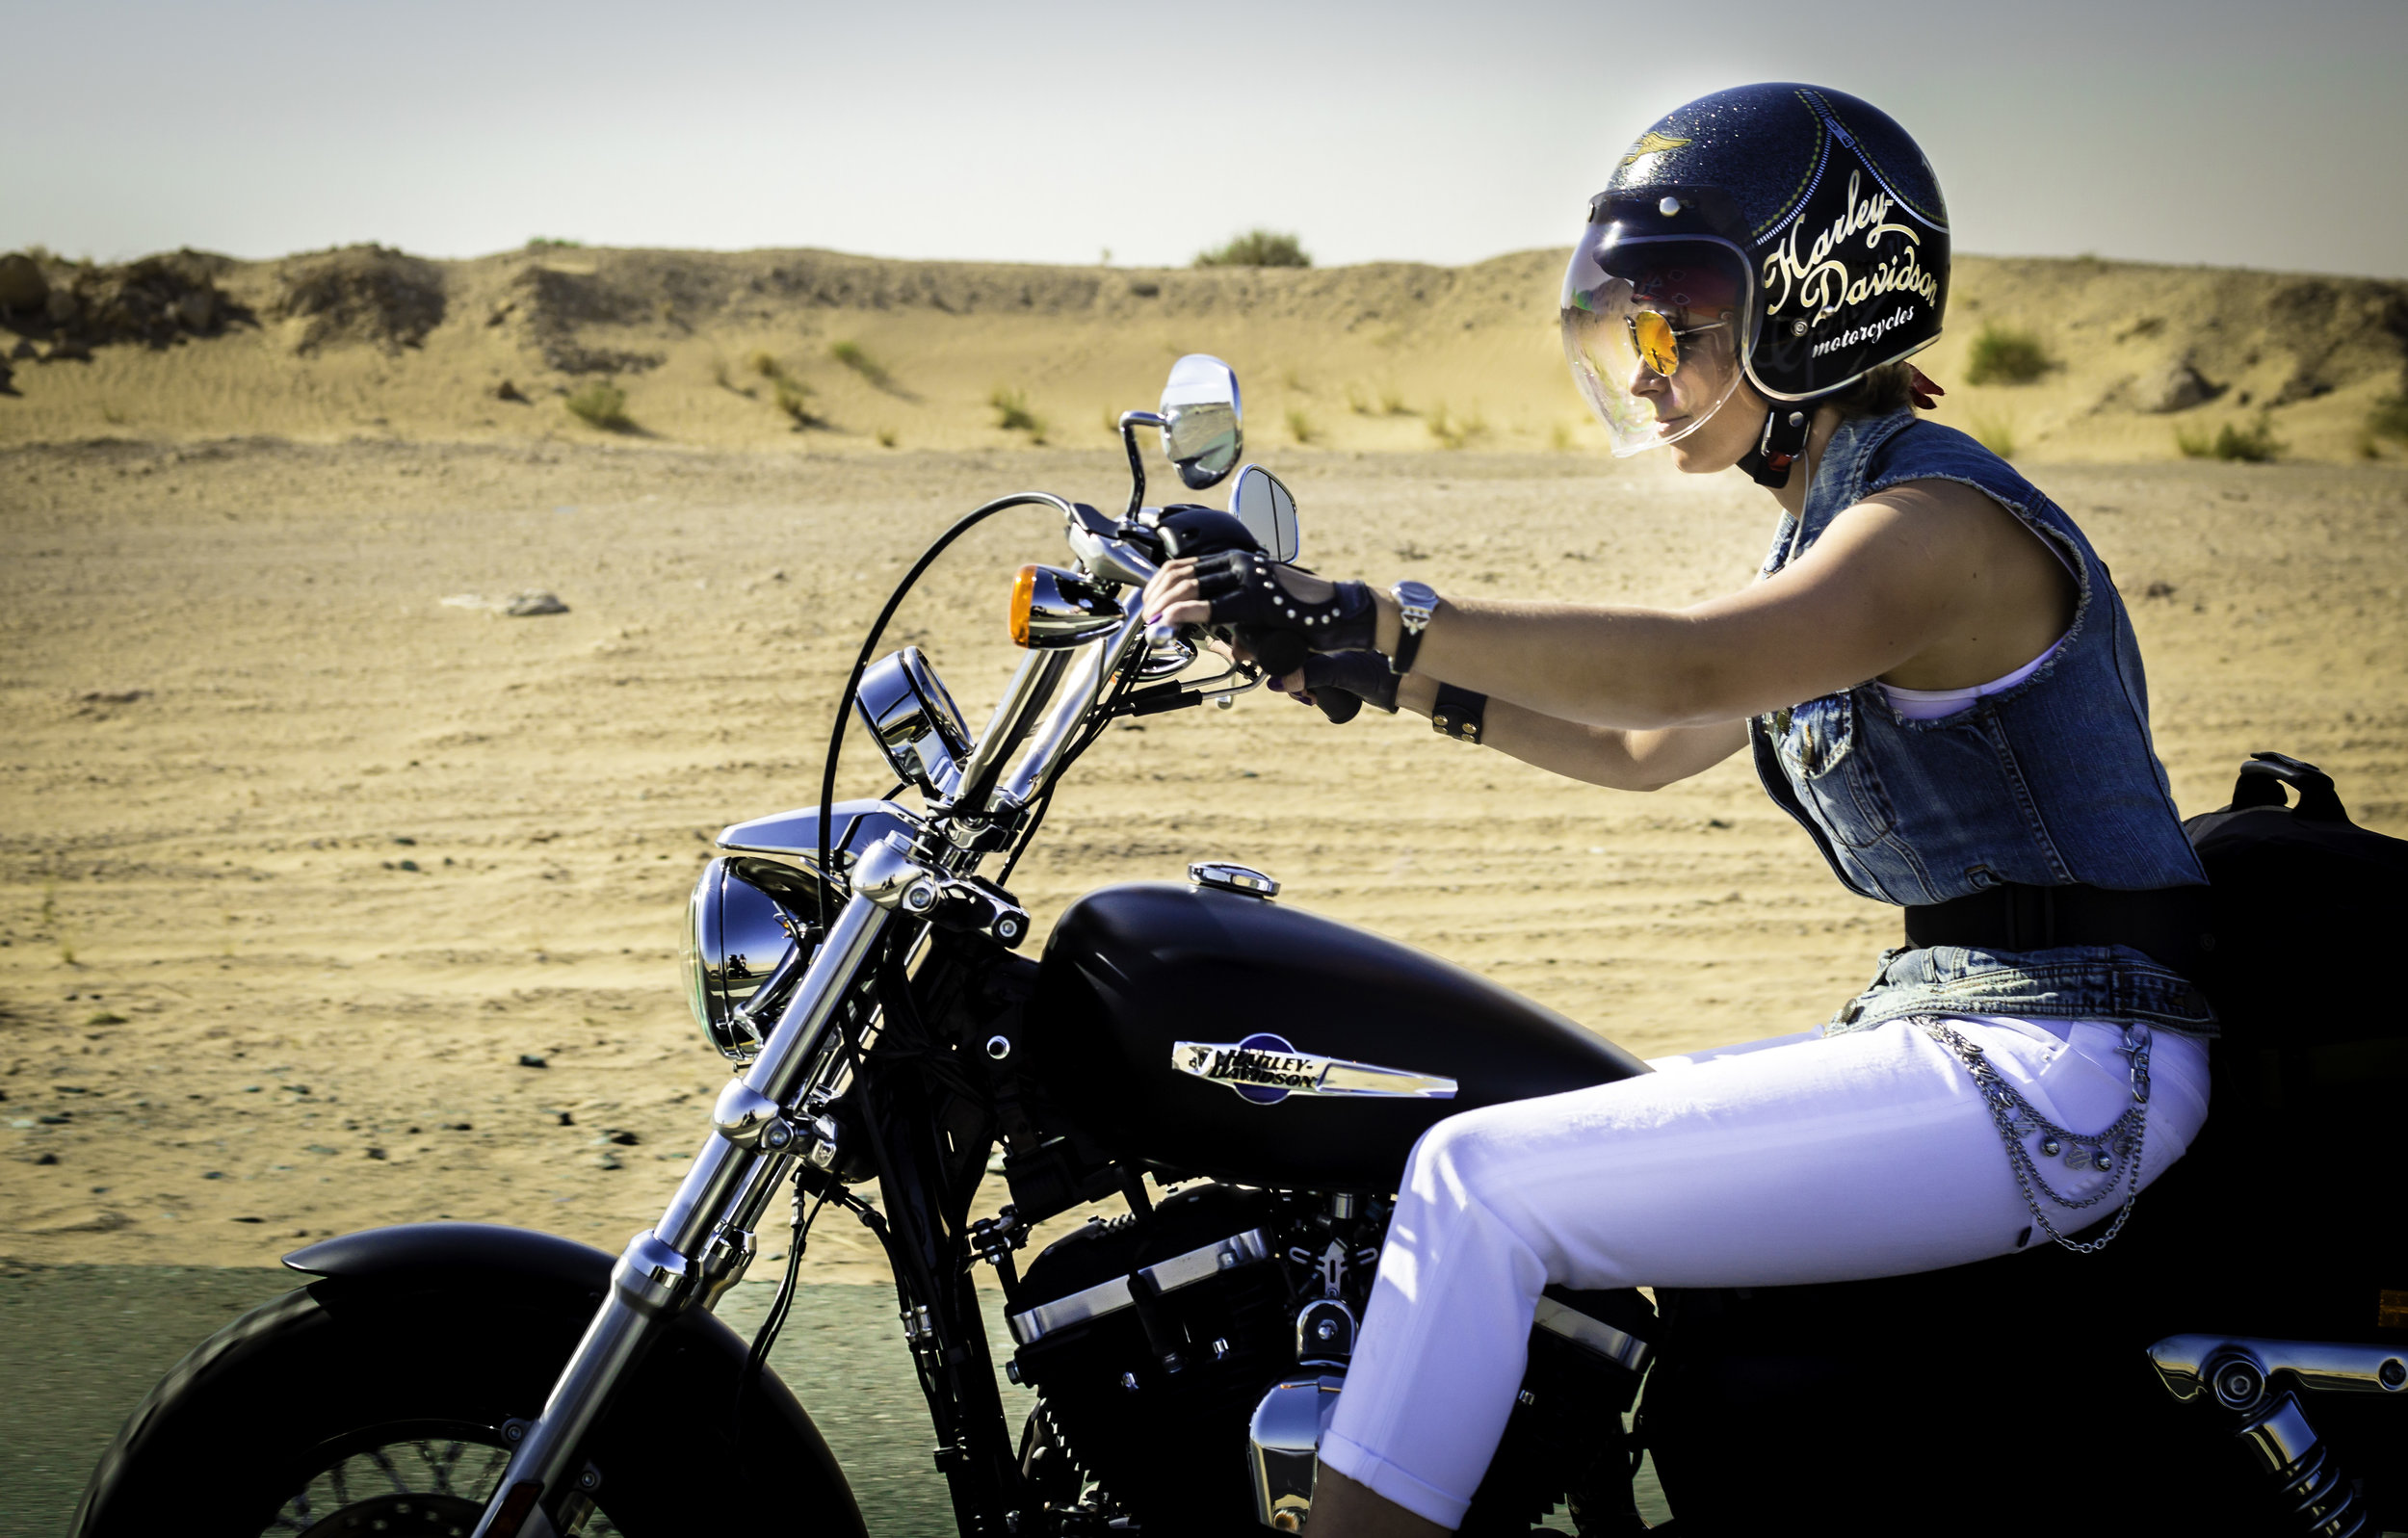 On the road, riding from Dubai toward Al Ain on the International Female Ride Day.jpg